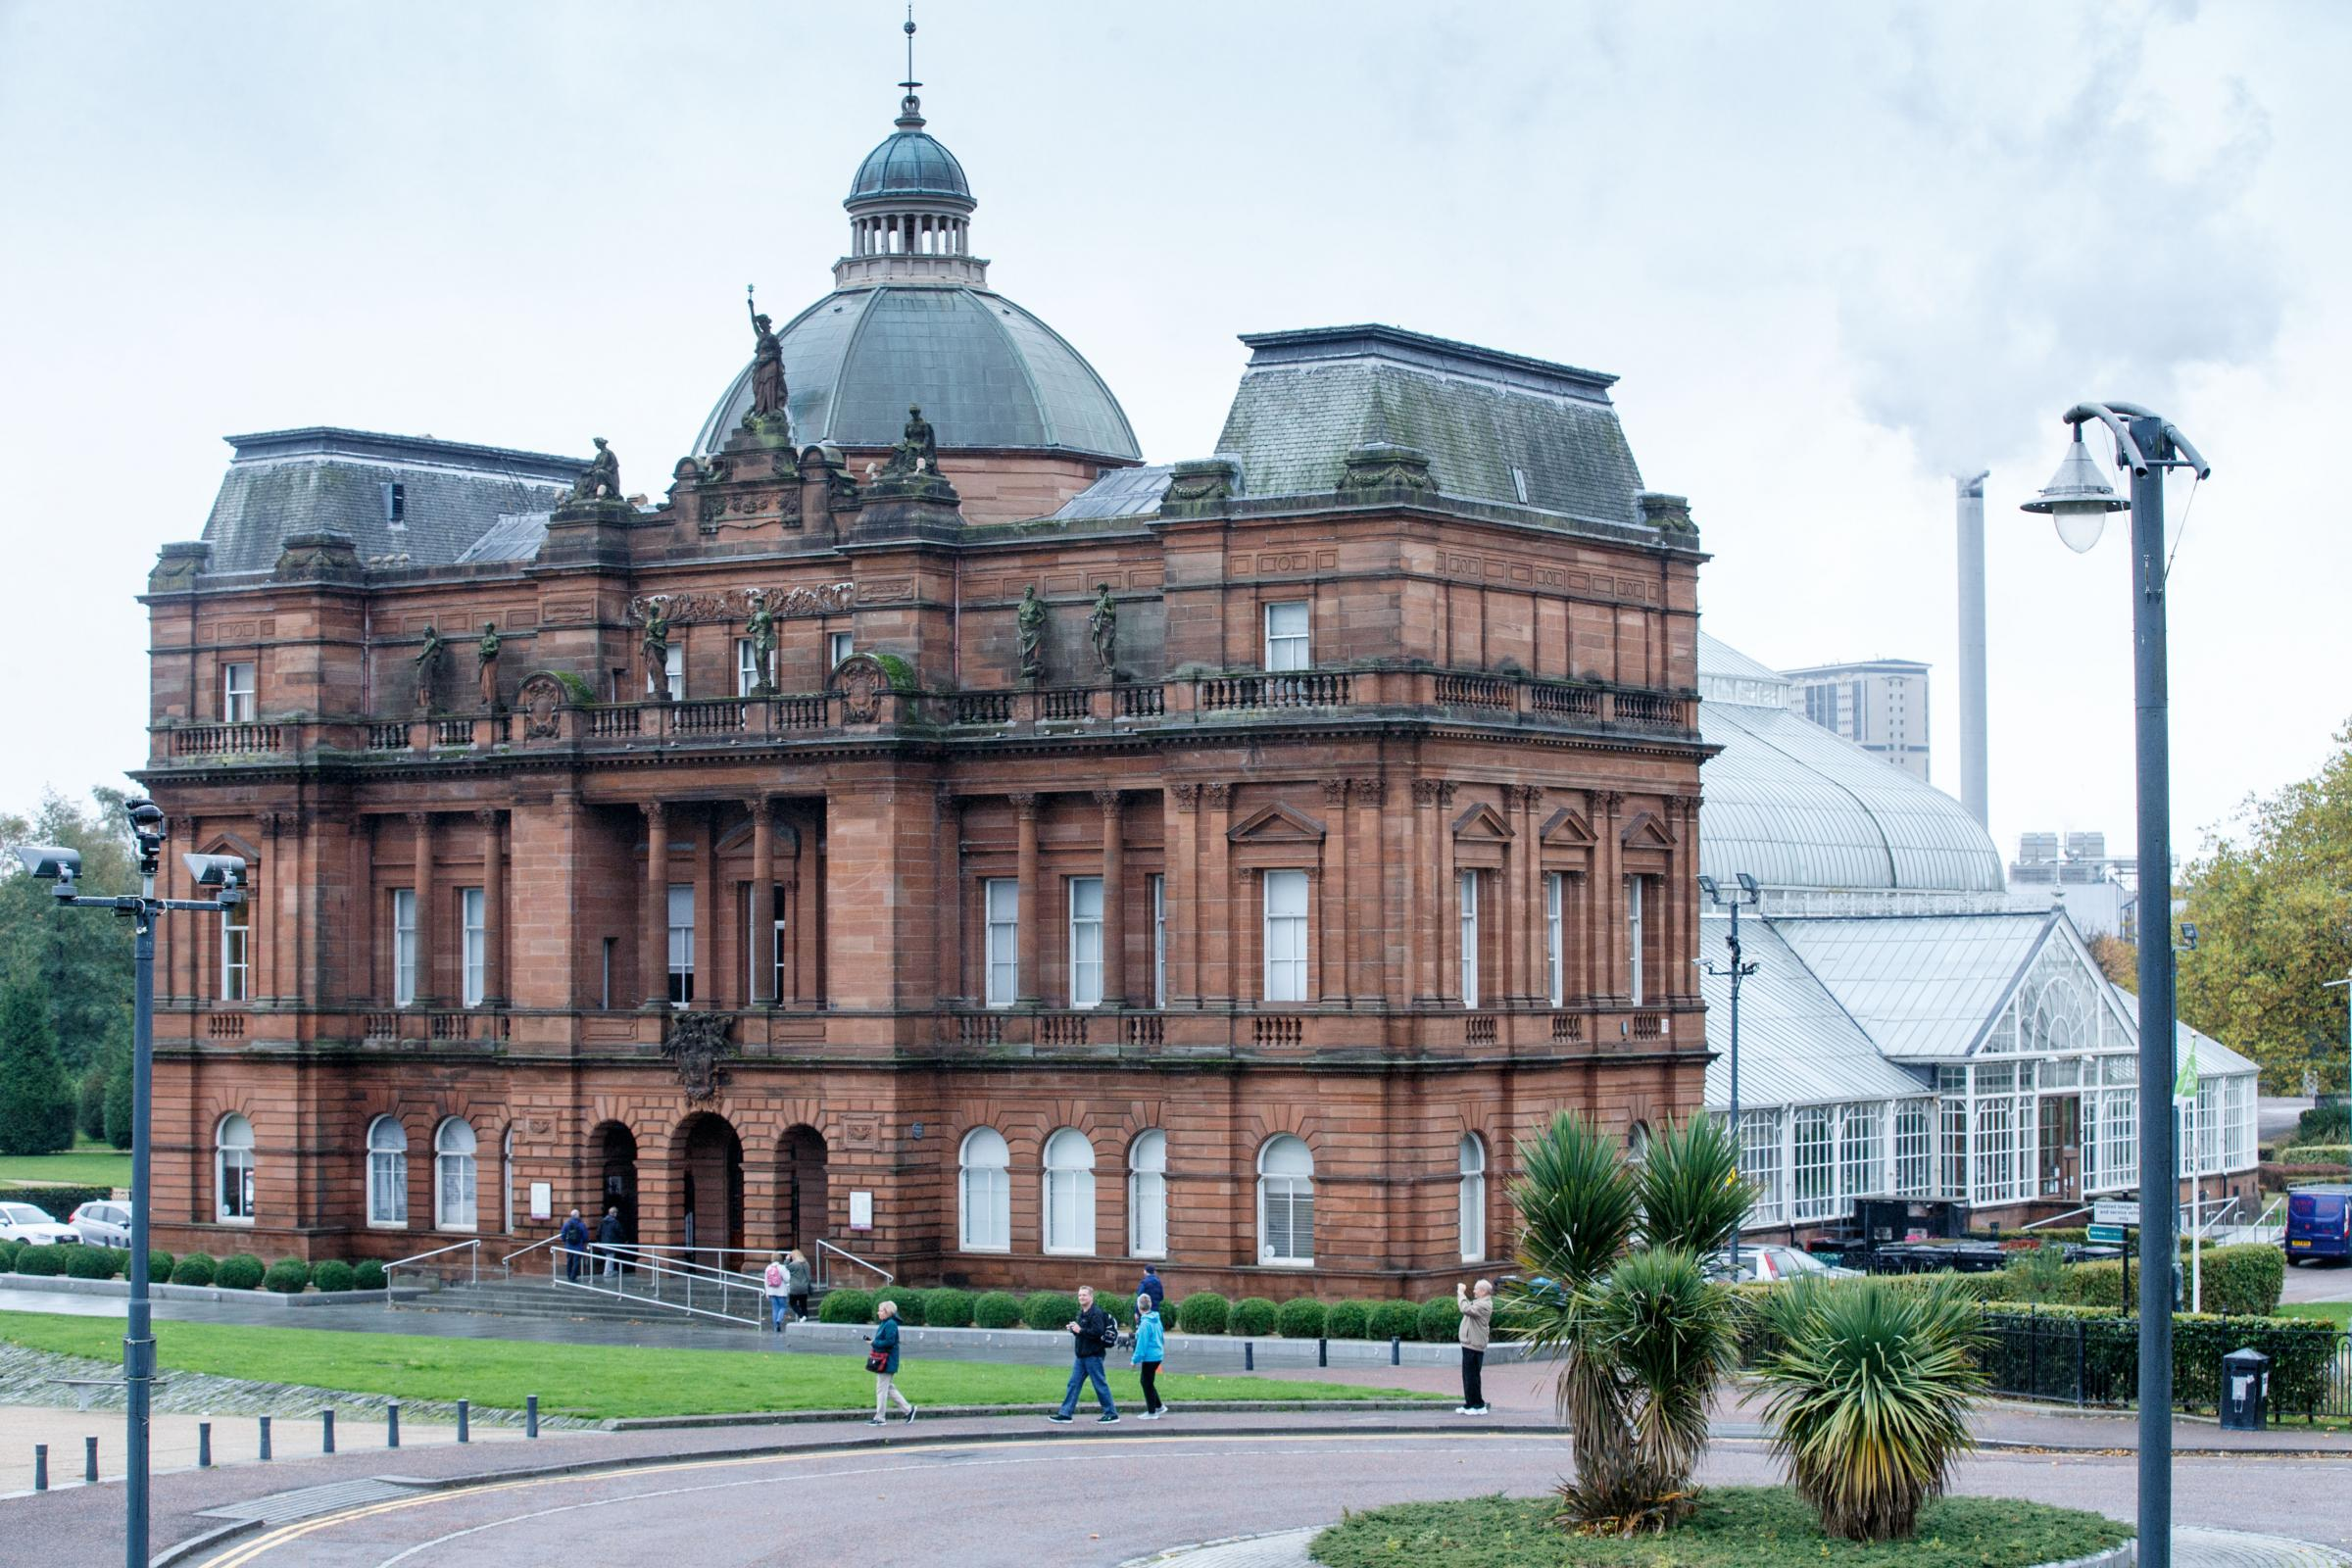 The People's Palace and Winter Gardens are to close